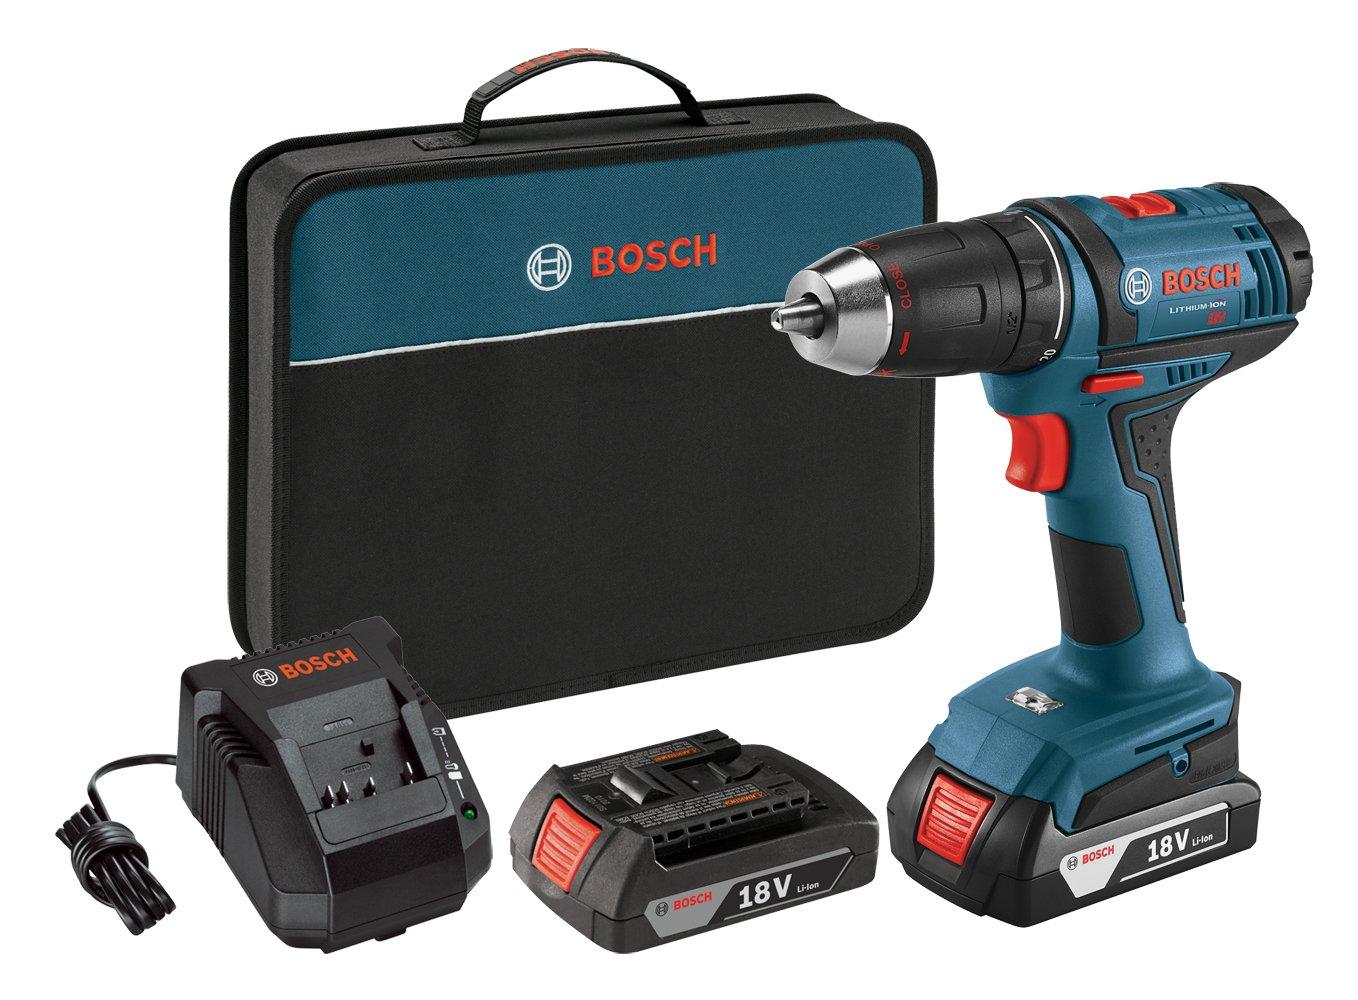 Bosch Power Tools Drill Driver Kit DDB181-02 - 18V Cordless Drill/Driver Tool Set with 2 Lithium Ion Batteries, 18 Volt Charger, & Soft Carry Contractor Bag